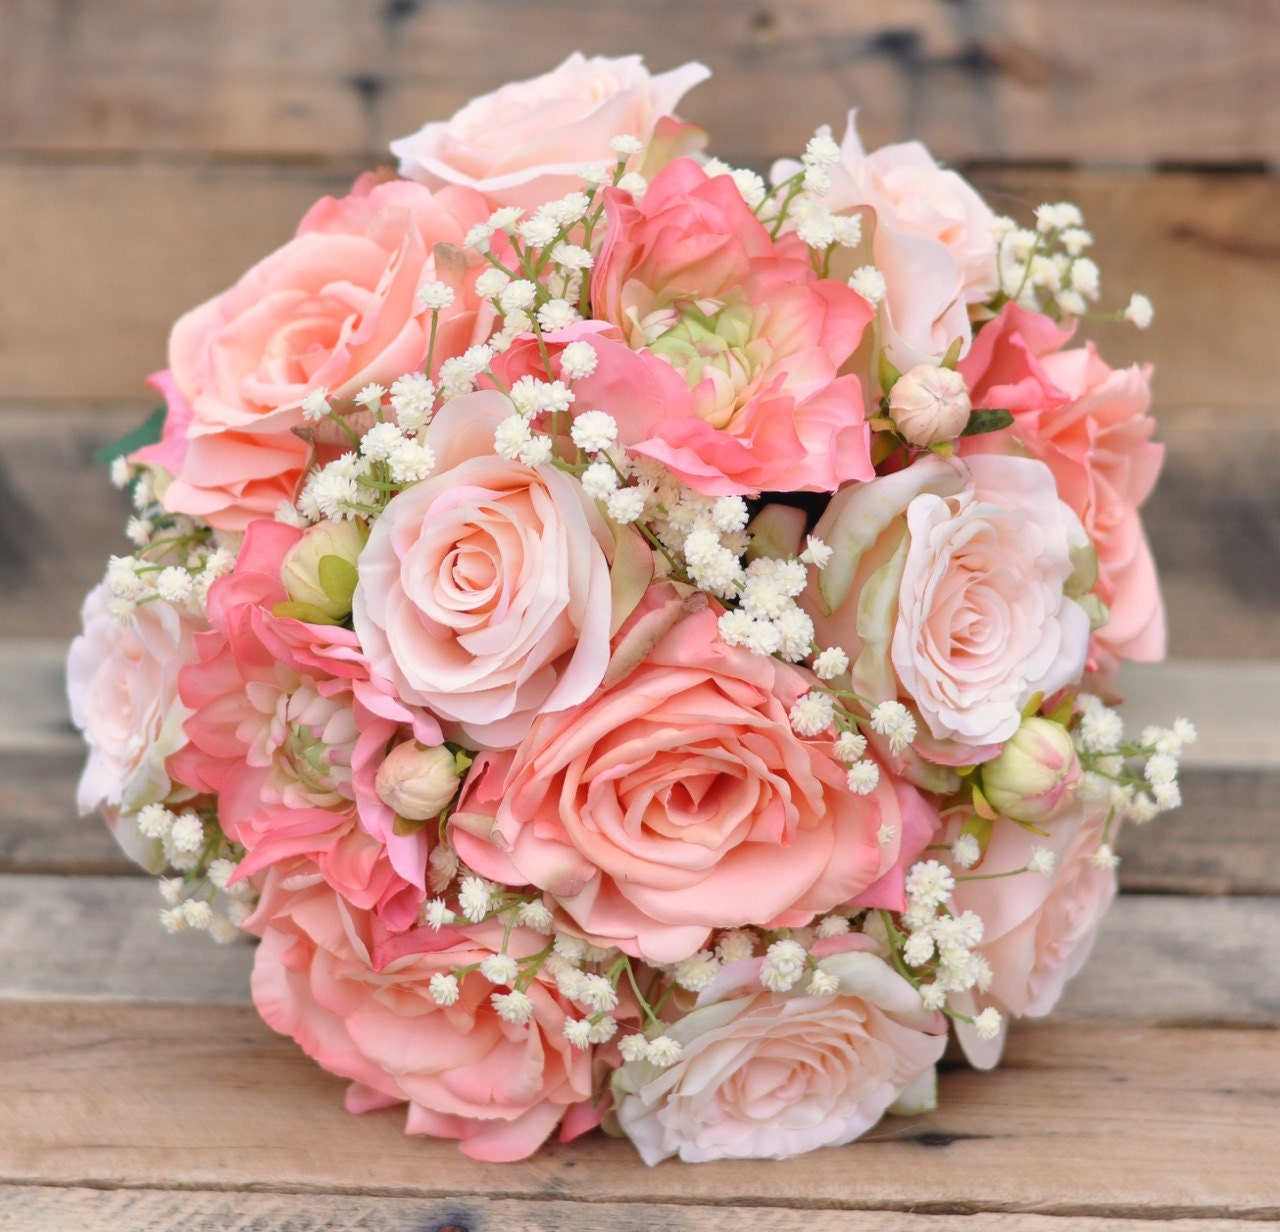 Silk Wedding Bouquet For Sale Shown With Two Matching